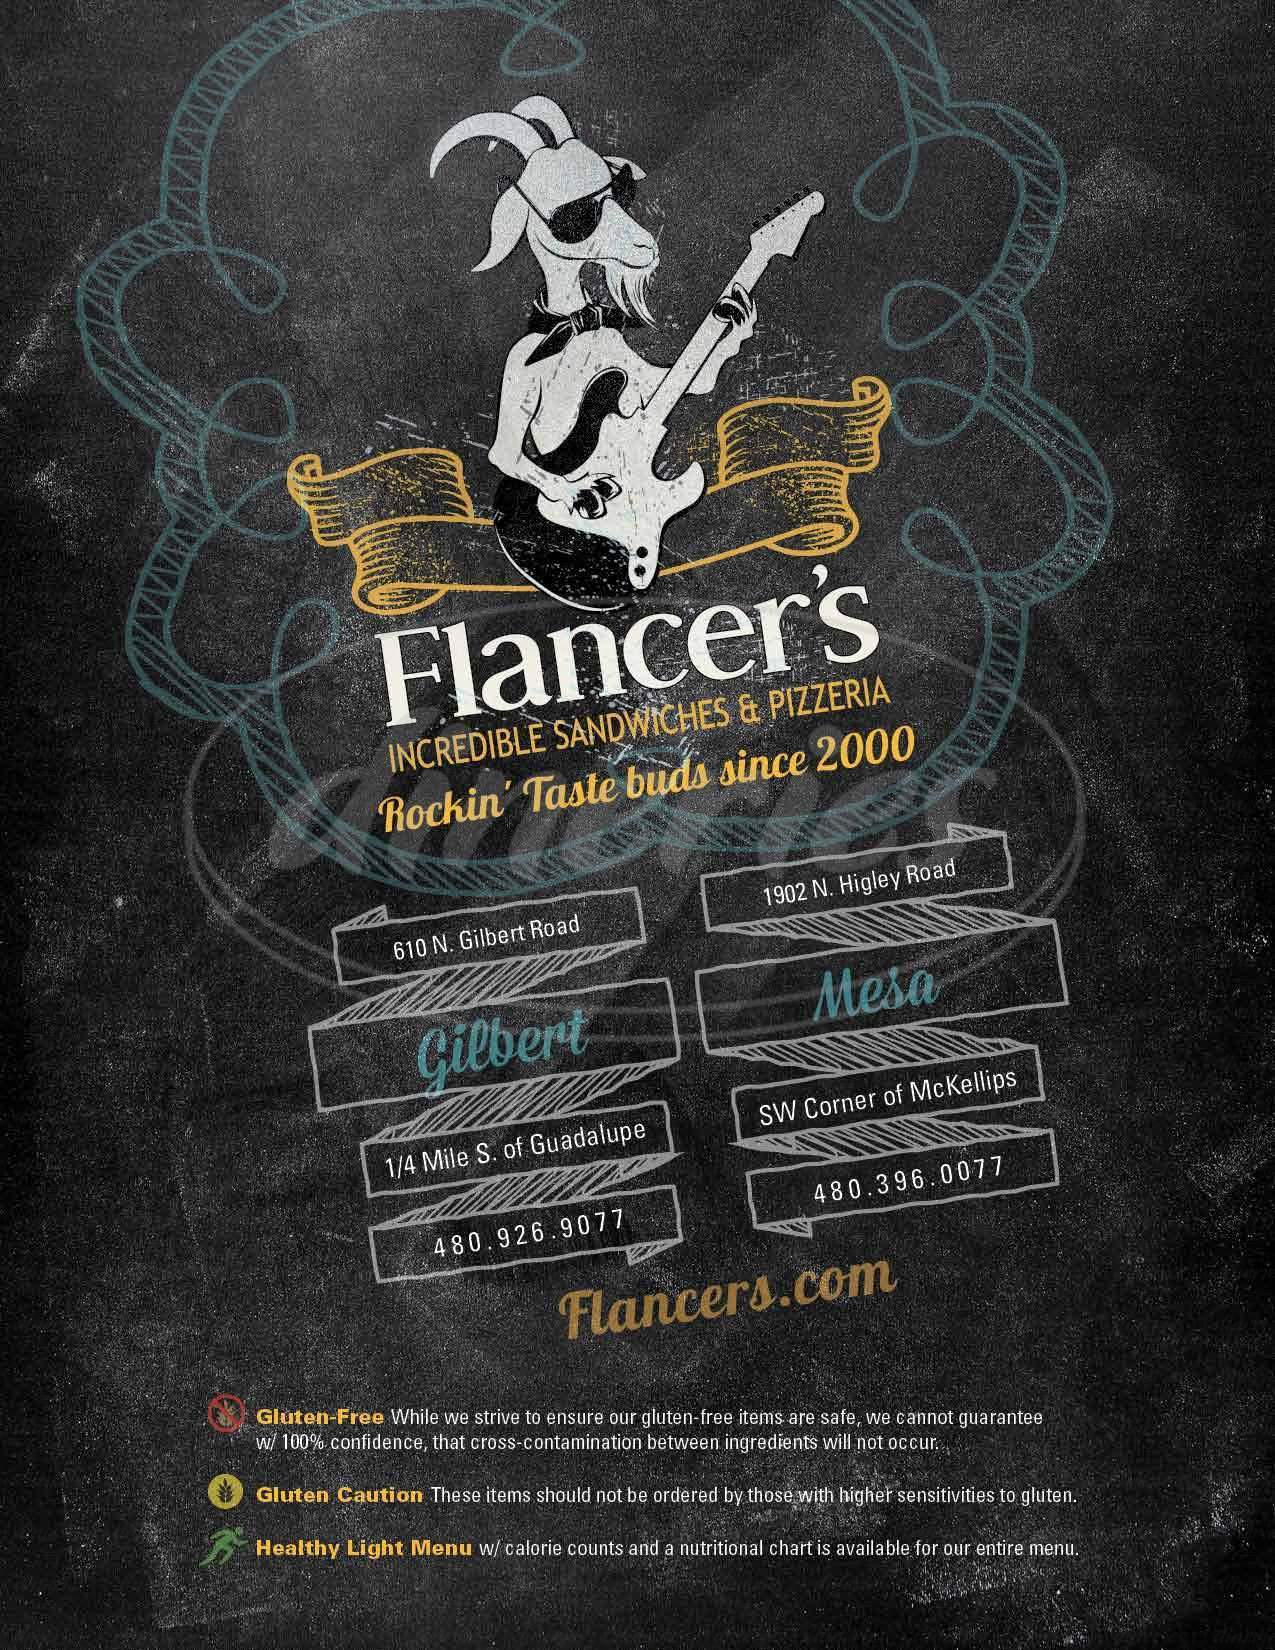 menu for Flancer's